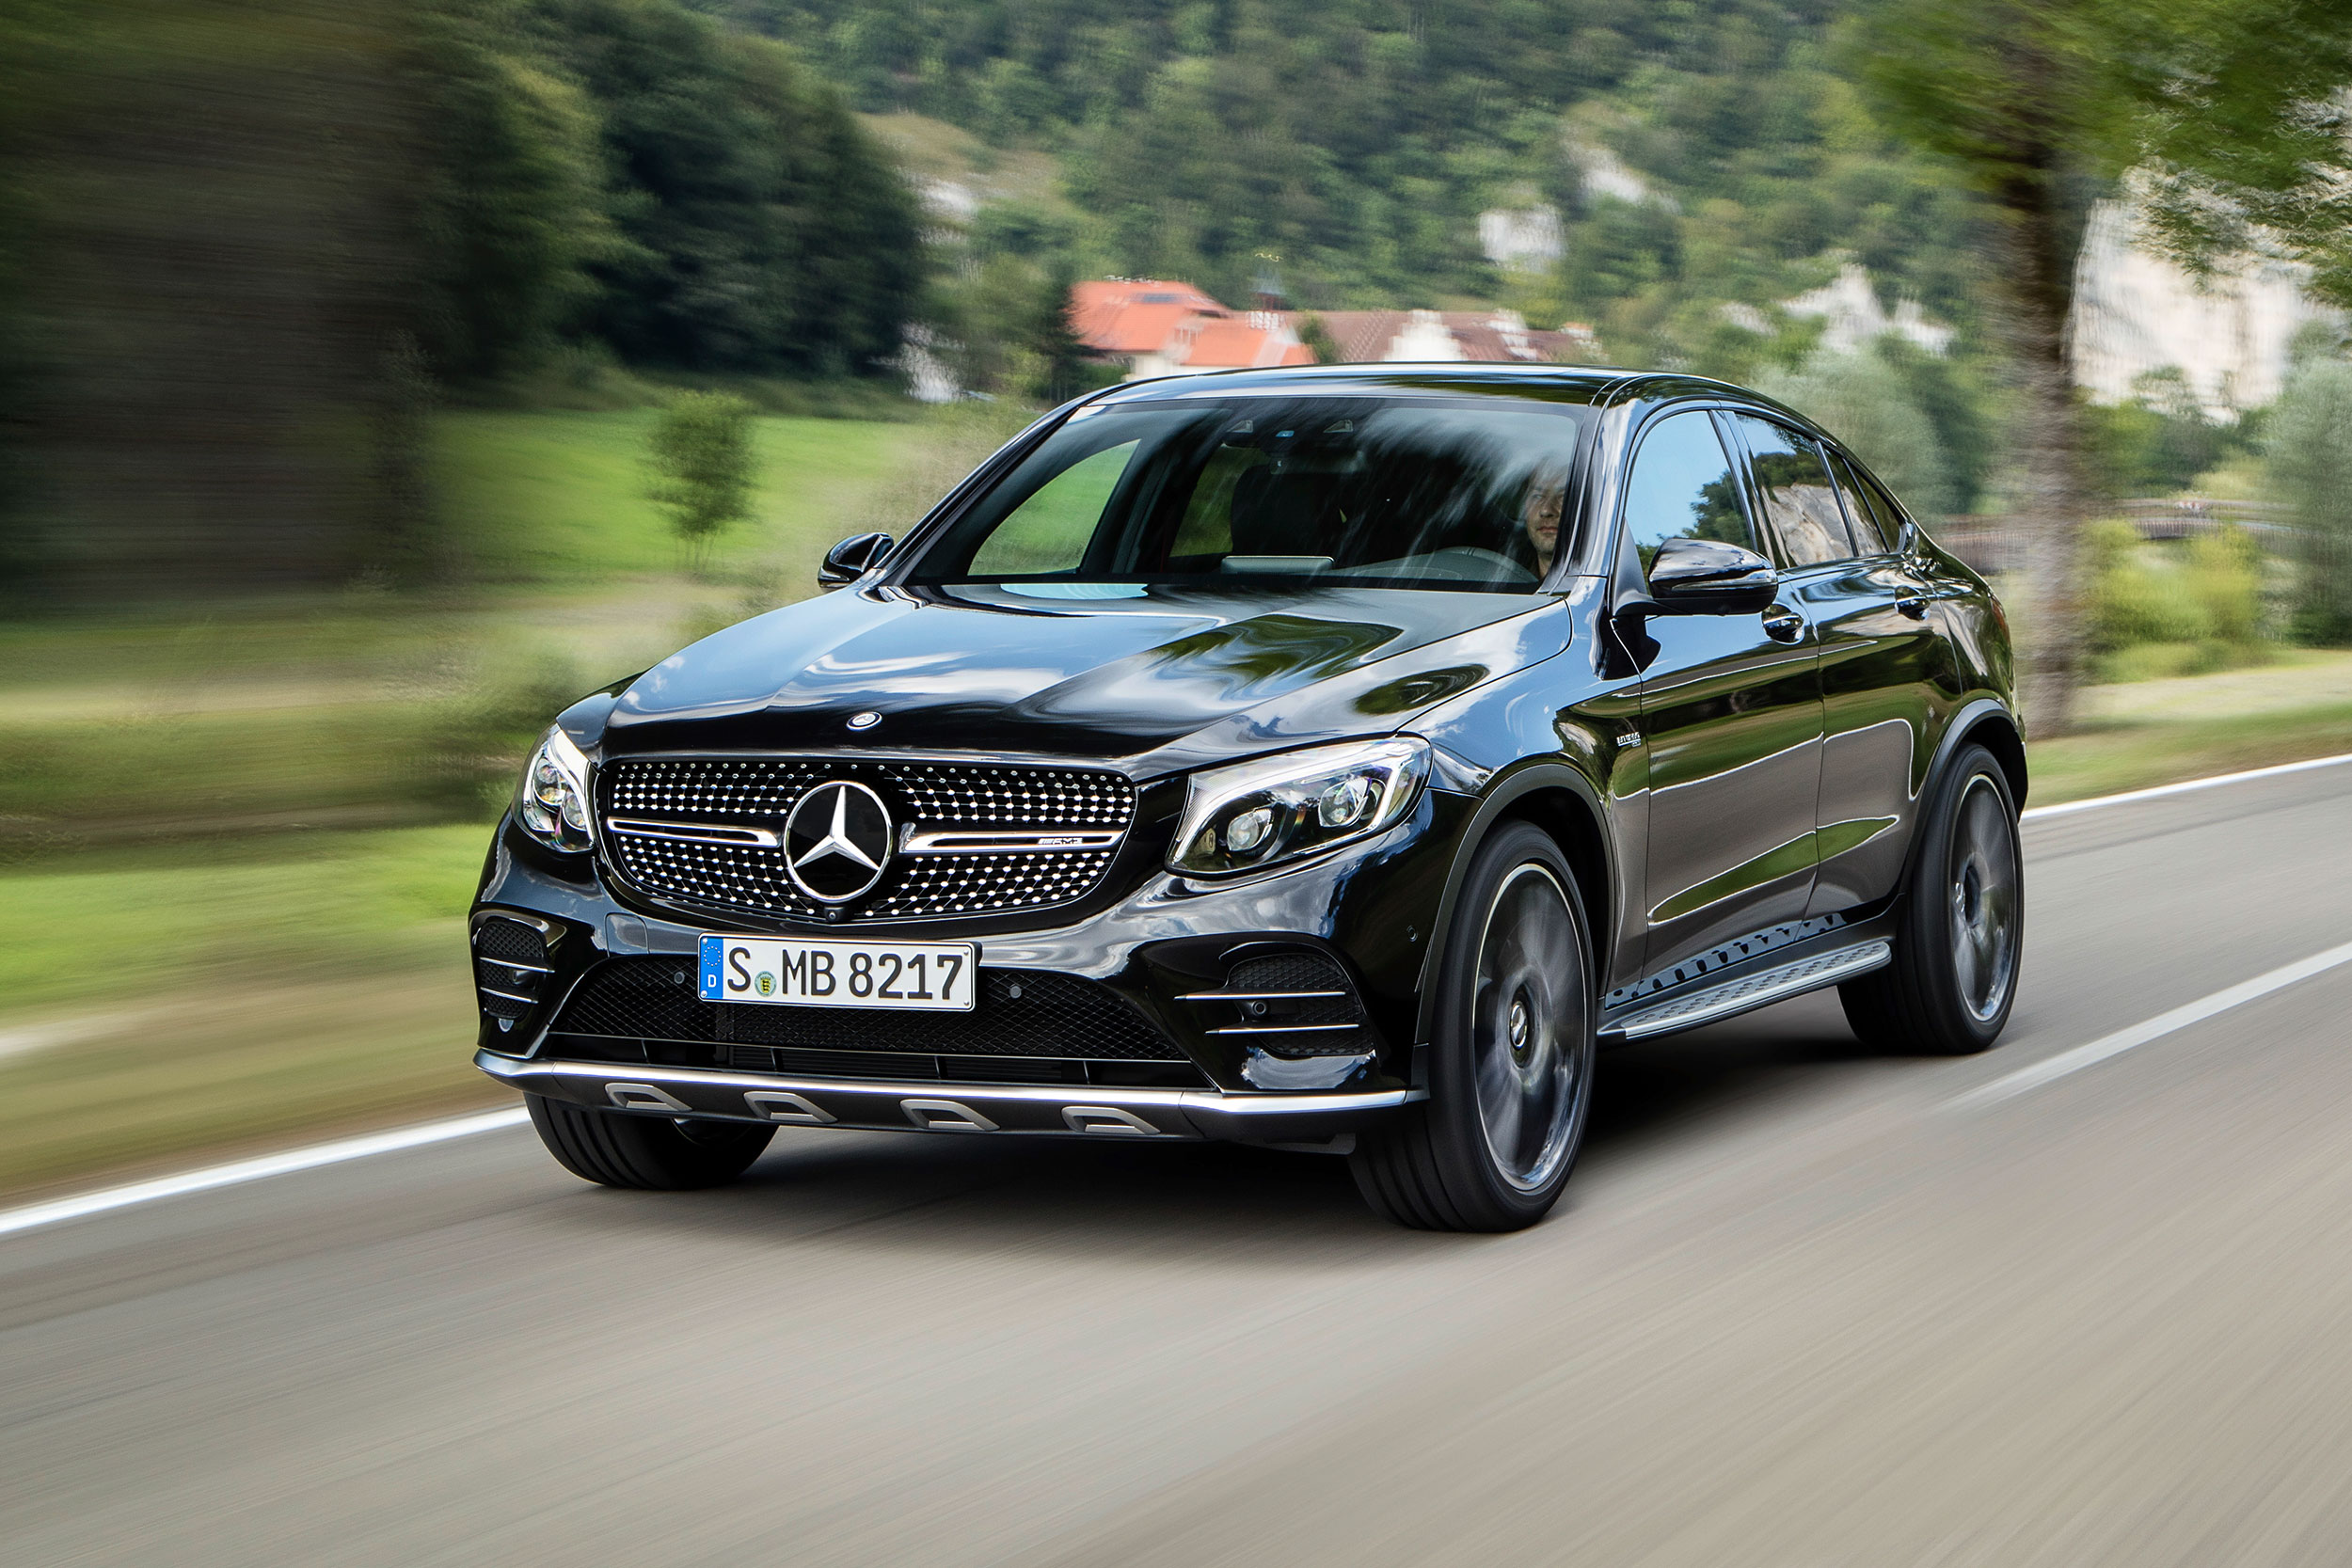 2017 mercedes benz glc coupe specs and features msn autos. Black Bedroom Furniture Sets. Home Design Ideas